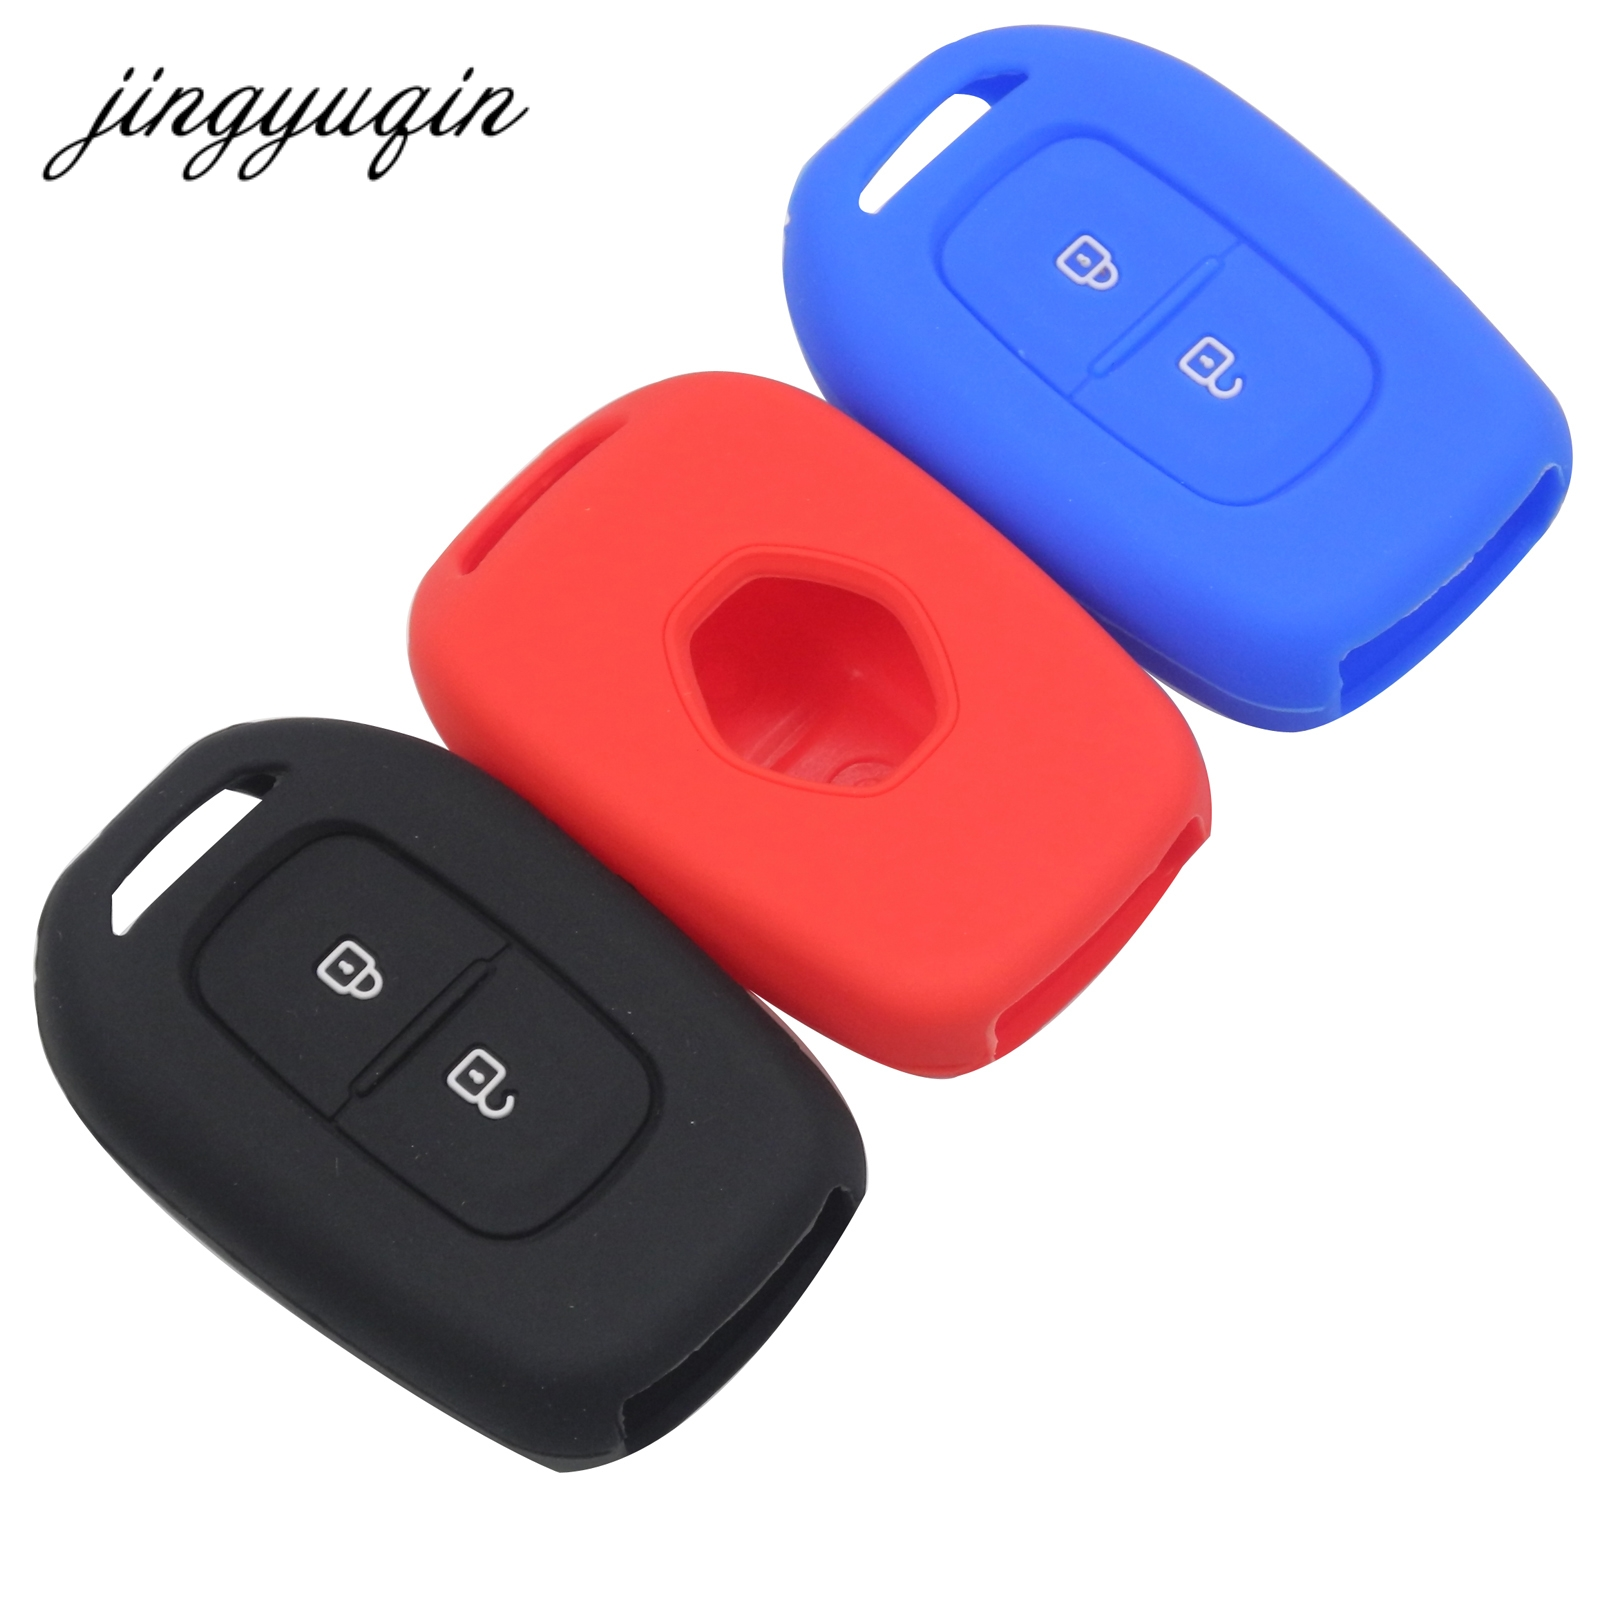 jingyuqin 2 Buttons Silicone Key Case for Renault Scenic Master Megane Duster Logan Clio Captur Laguna Fluence Remote FOB Cover jingyuqin 2 buttons silicone key case for renault scenic master megane duster logan clio captur laguna fluence remote fob cover